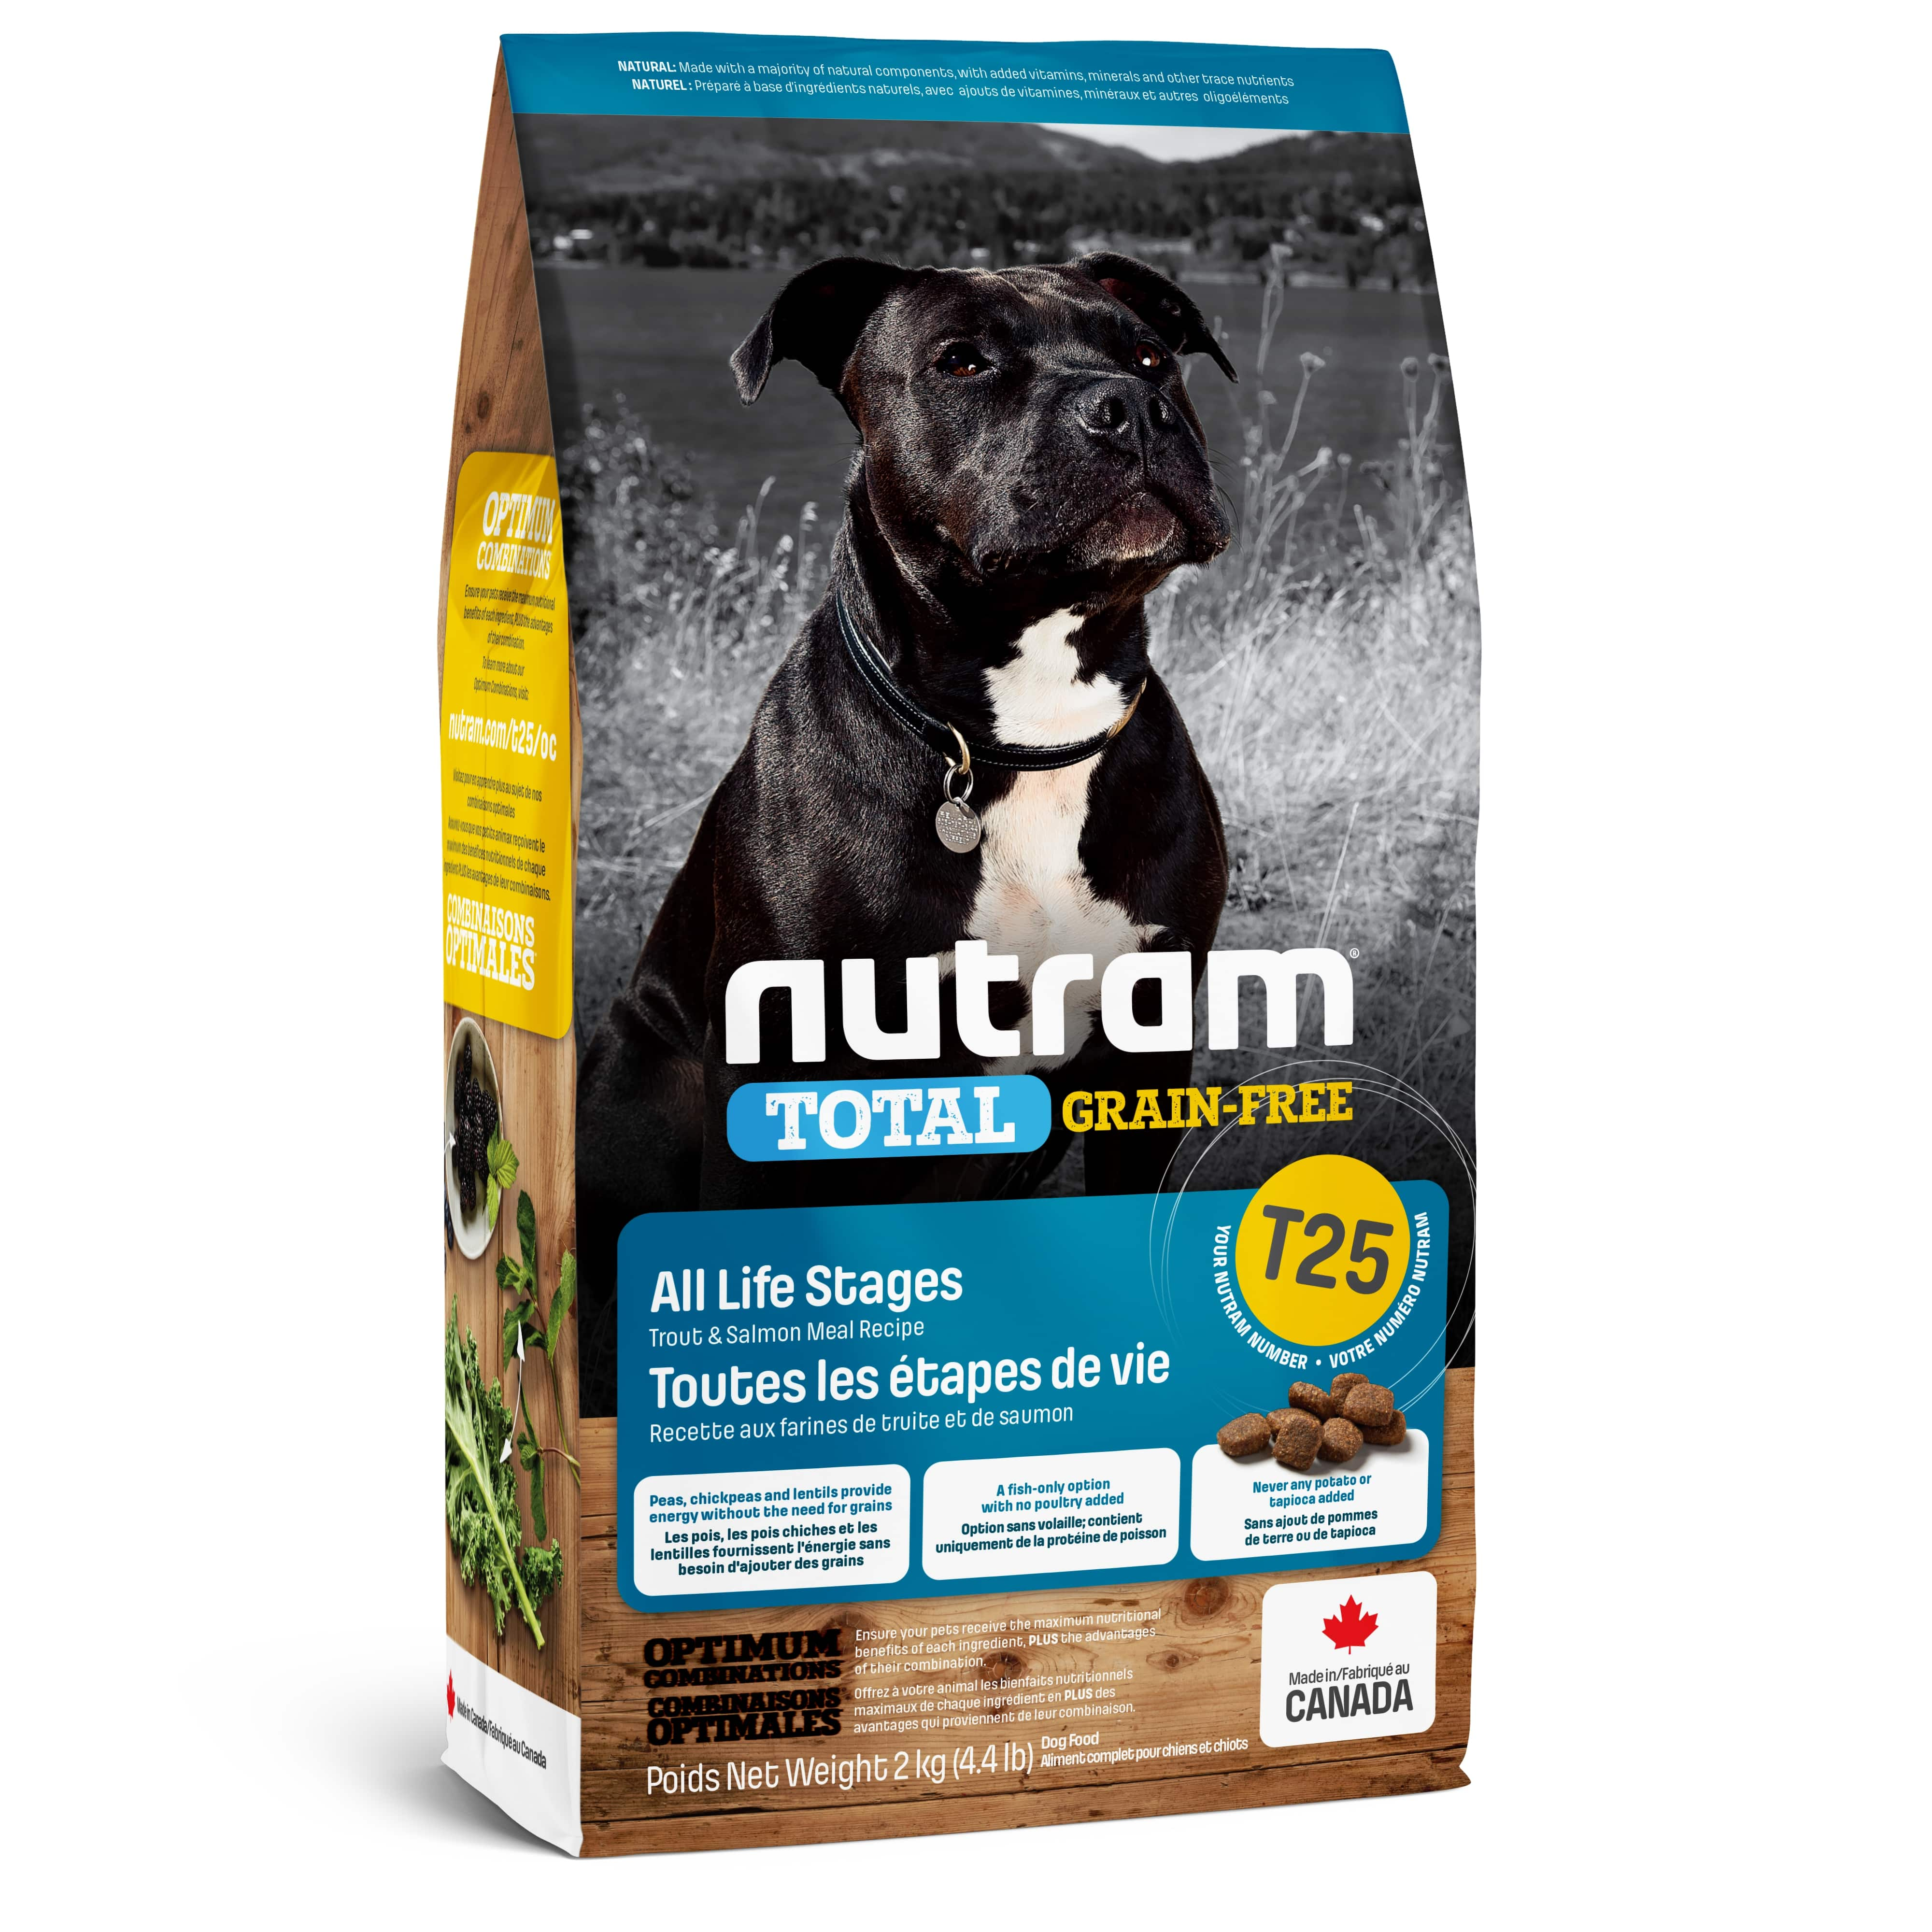 T25 Nutram Total Grain-Free® Salmon & Trout Dog Food